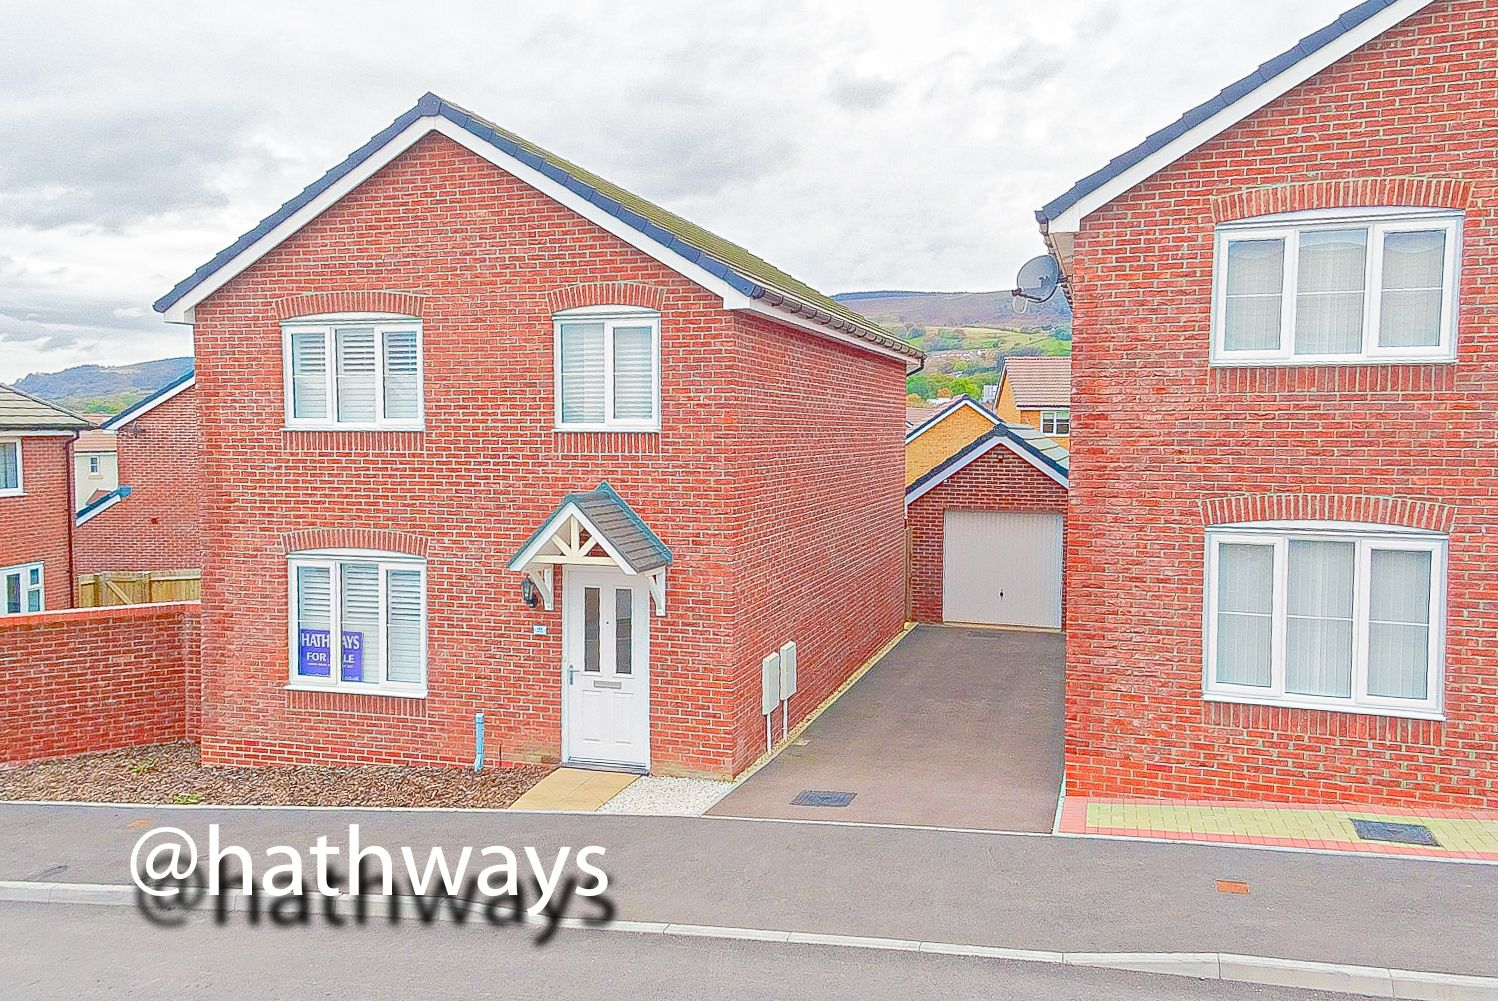 4 bed house for sale in Cwrt Celyn 47